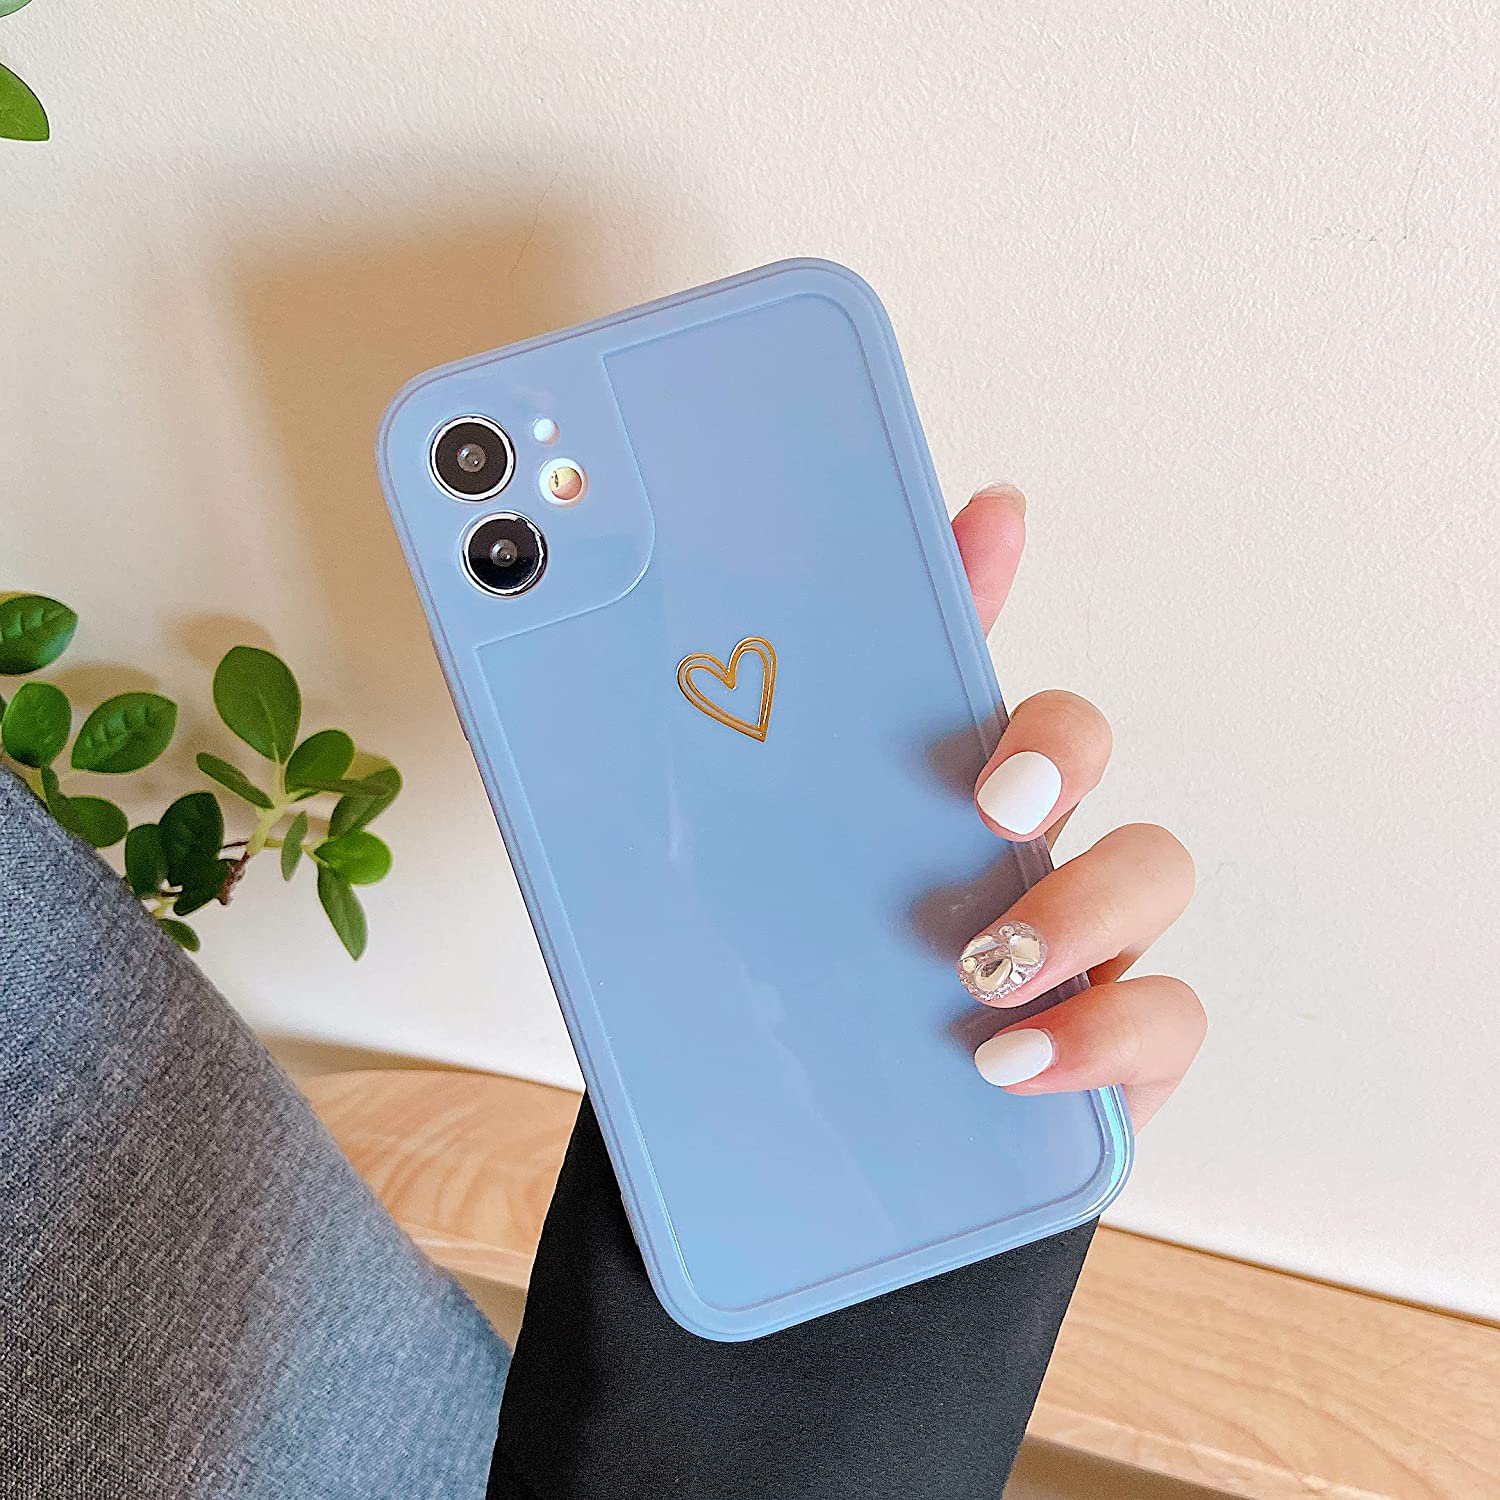 ZTOFERA Compatible with iPhone 11 Case, 6.1-Inch, Girls Cute Love Heart Pattern Shockproof Silicone Bumper Slim Soft TPU Cover Women Protective Case for iPhone 11, Blue